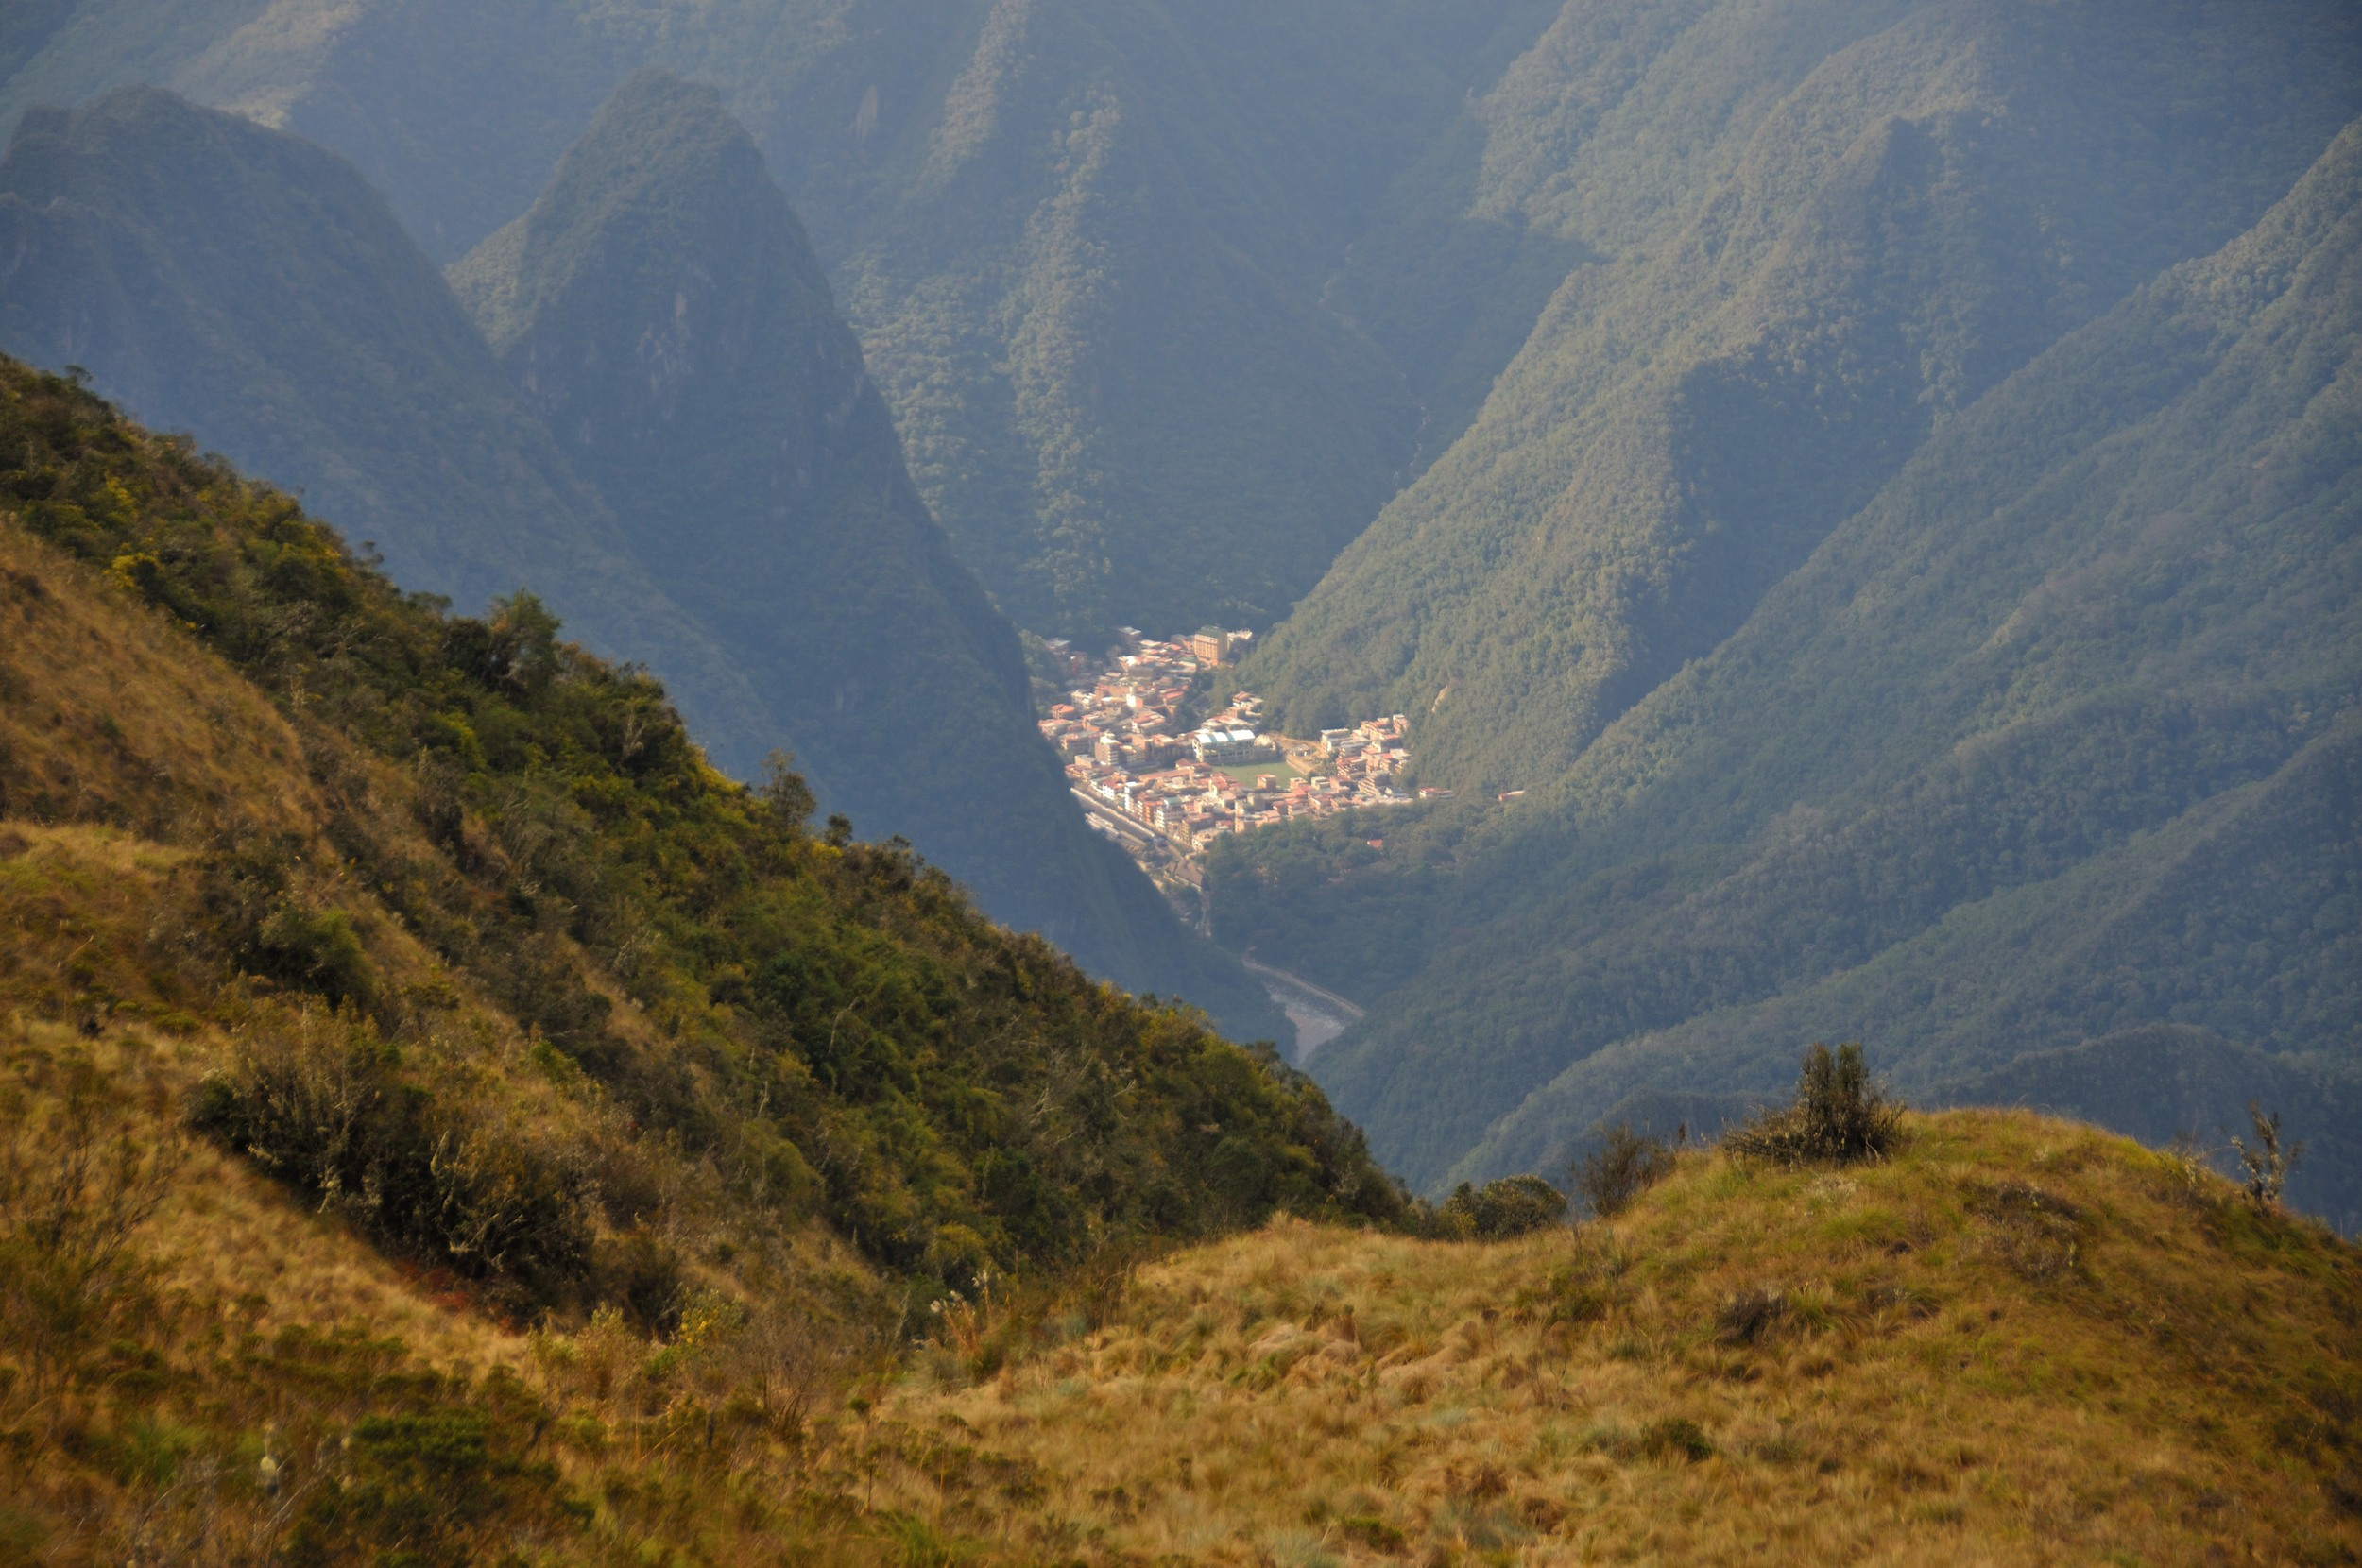 Aguas Calientes town in the distance